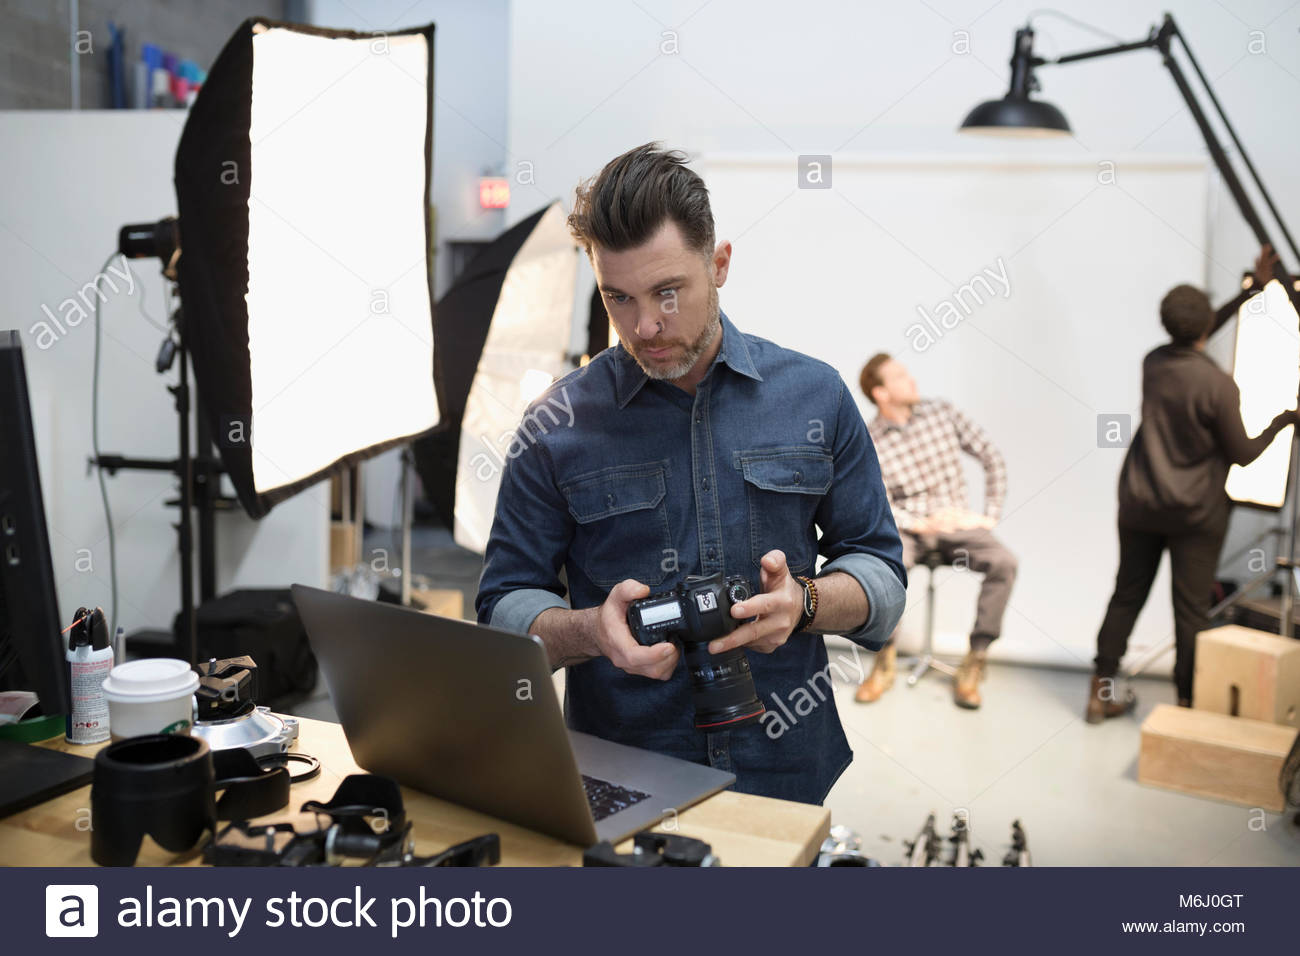 Male photographer with digital camera using laptop at photo shoot in studio - Stock Image